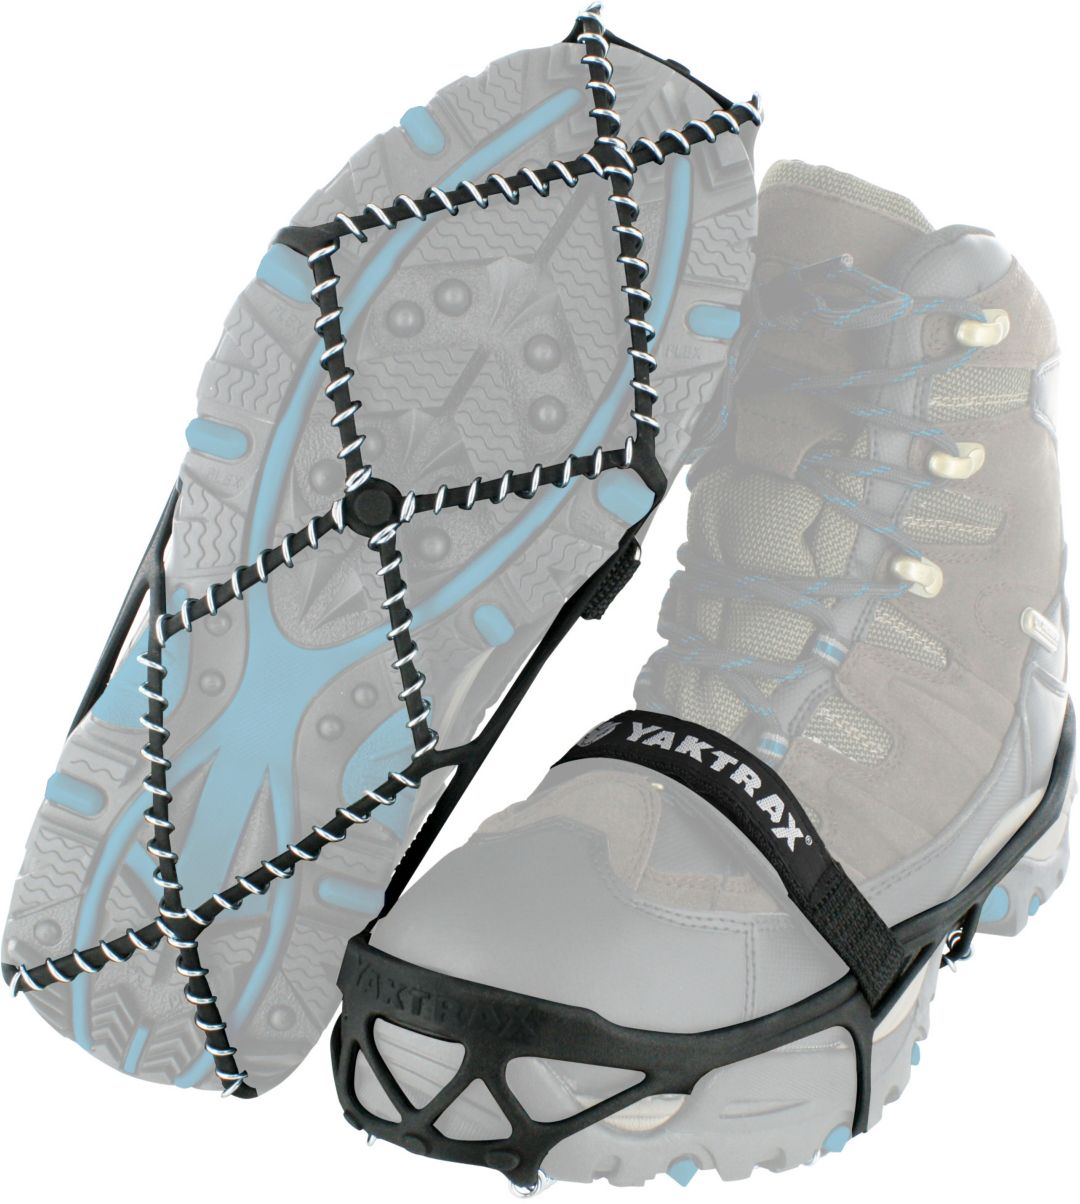 f35ed048550a5 Yaktrax Pro Traction Device. noImageFound. Previous